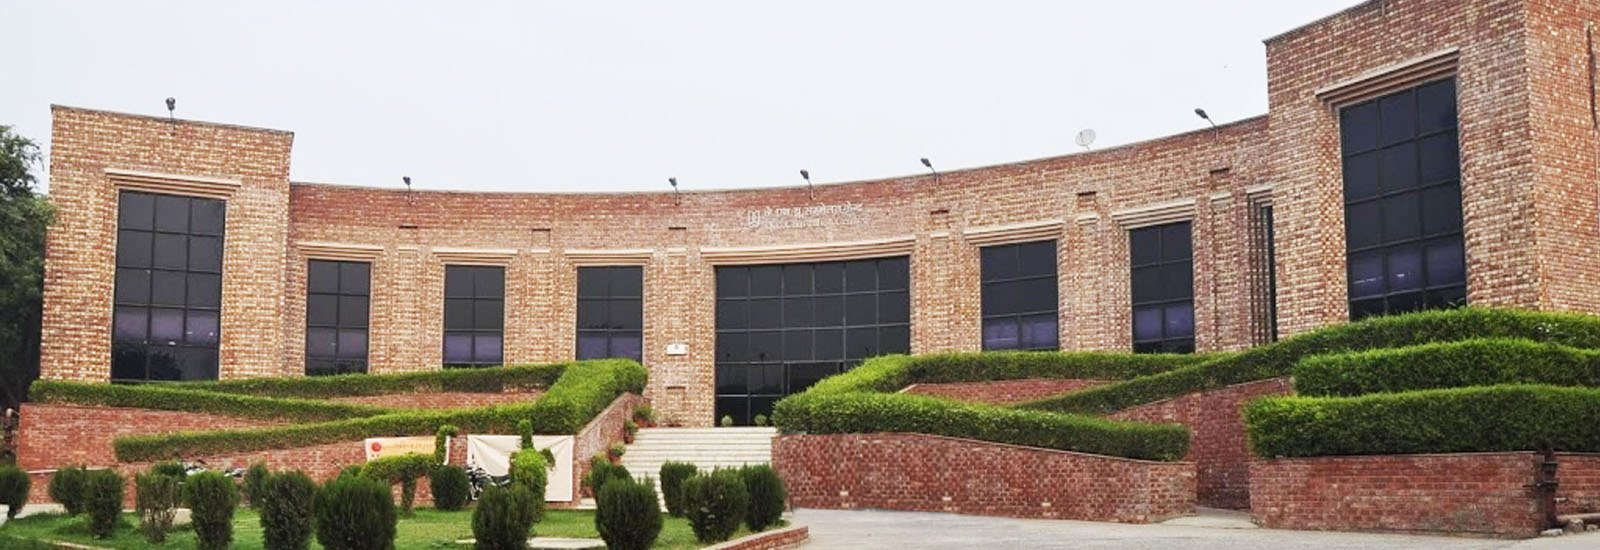 JNU Admission 2019: JNUEE, Application Form, Exam Date, Eligibility